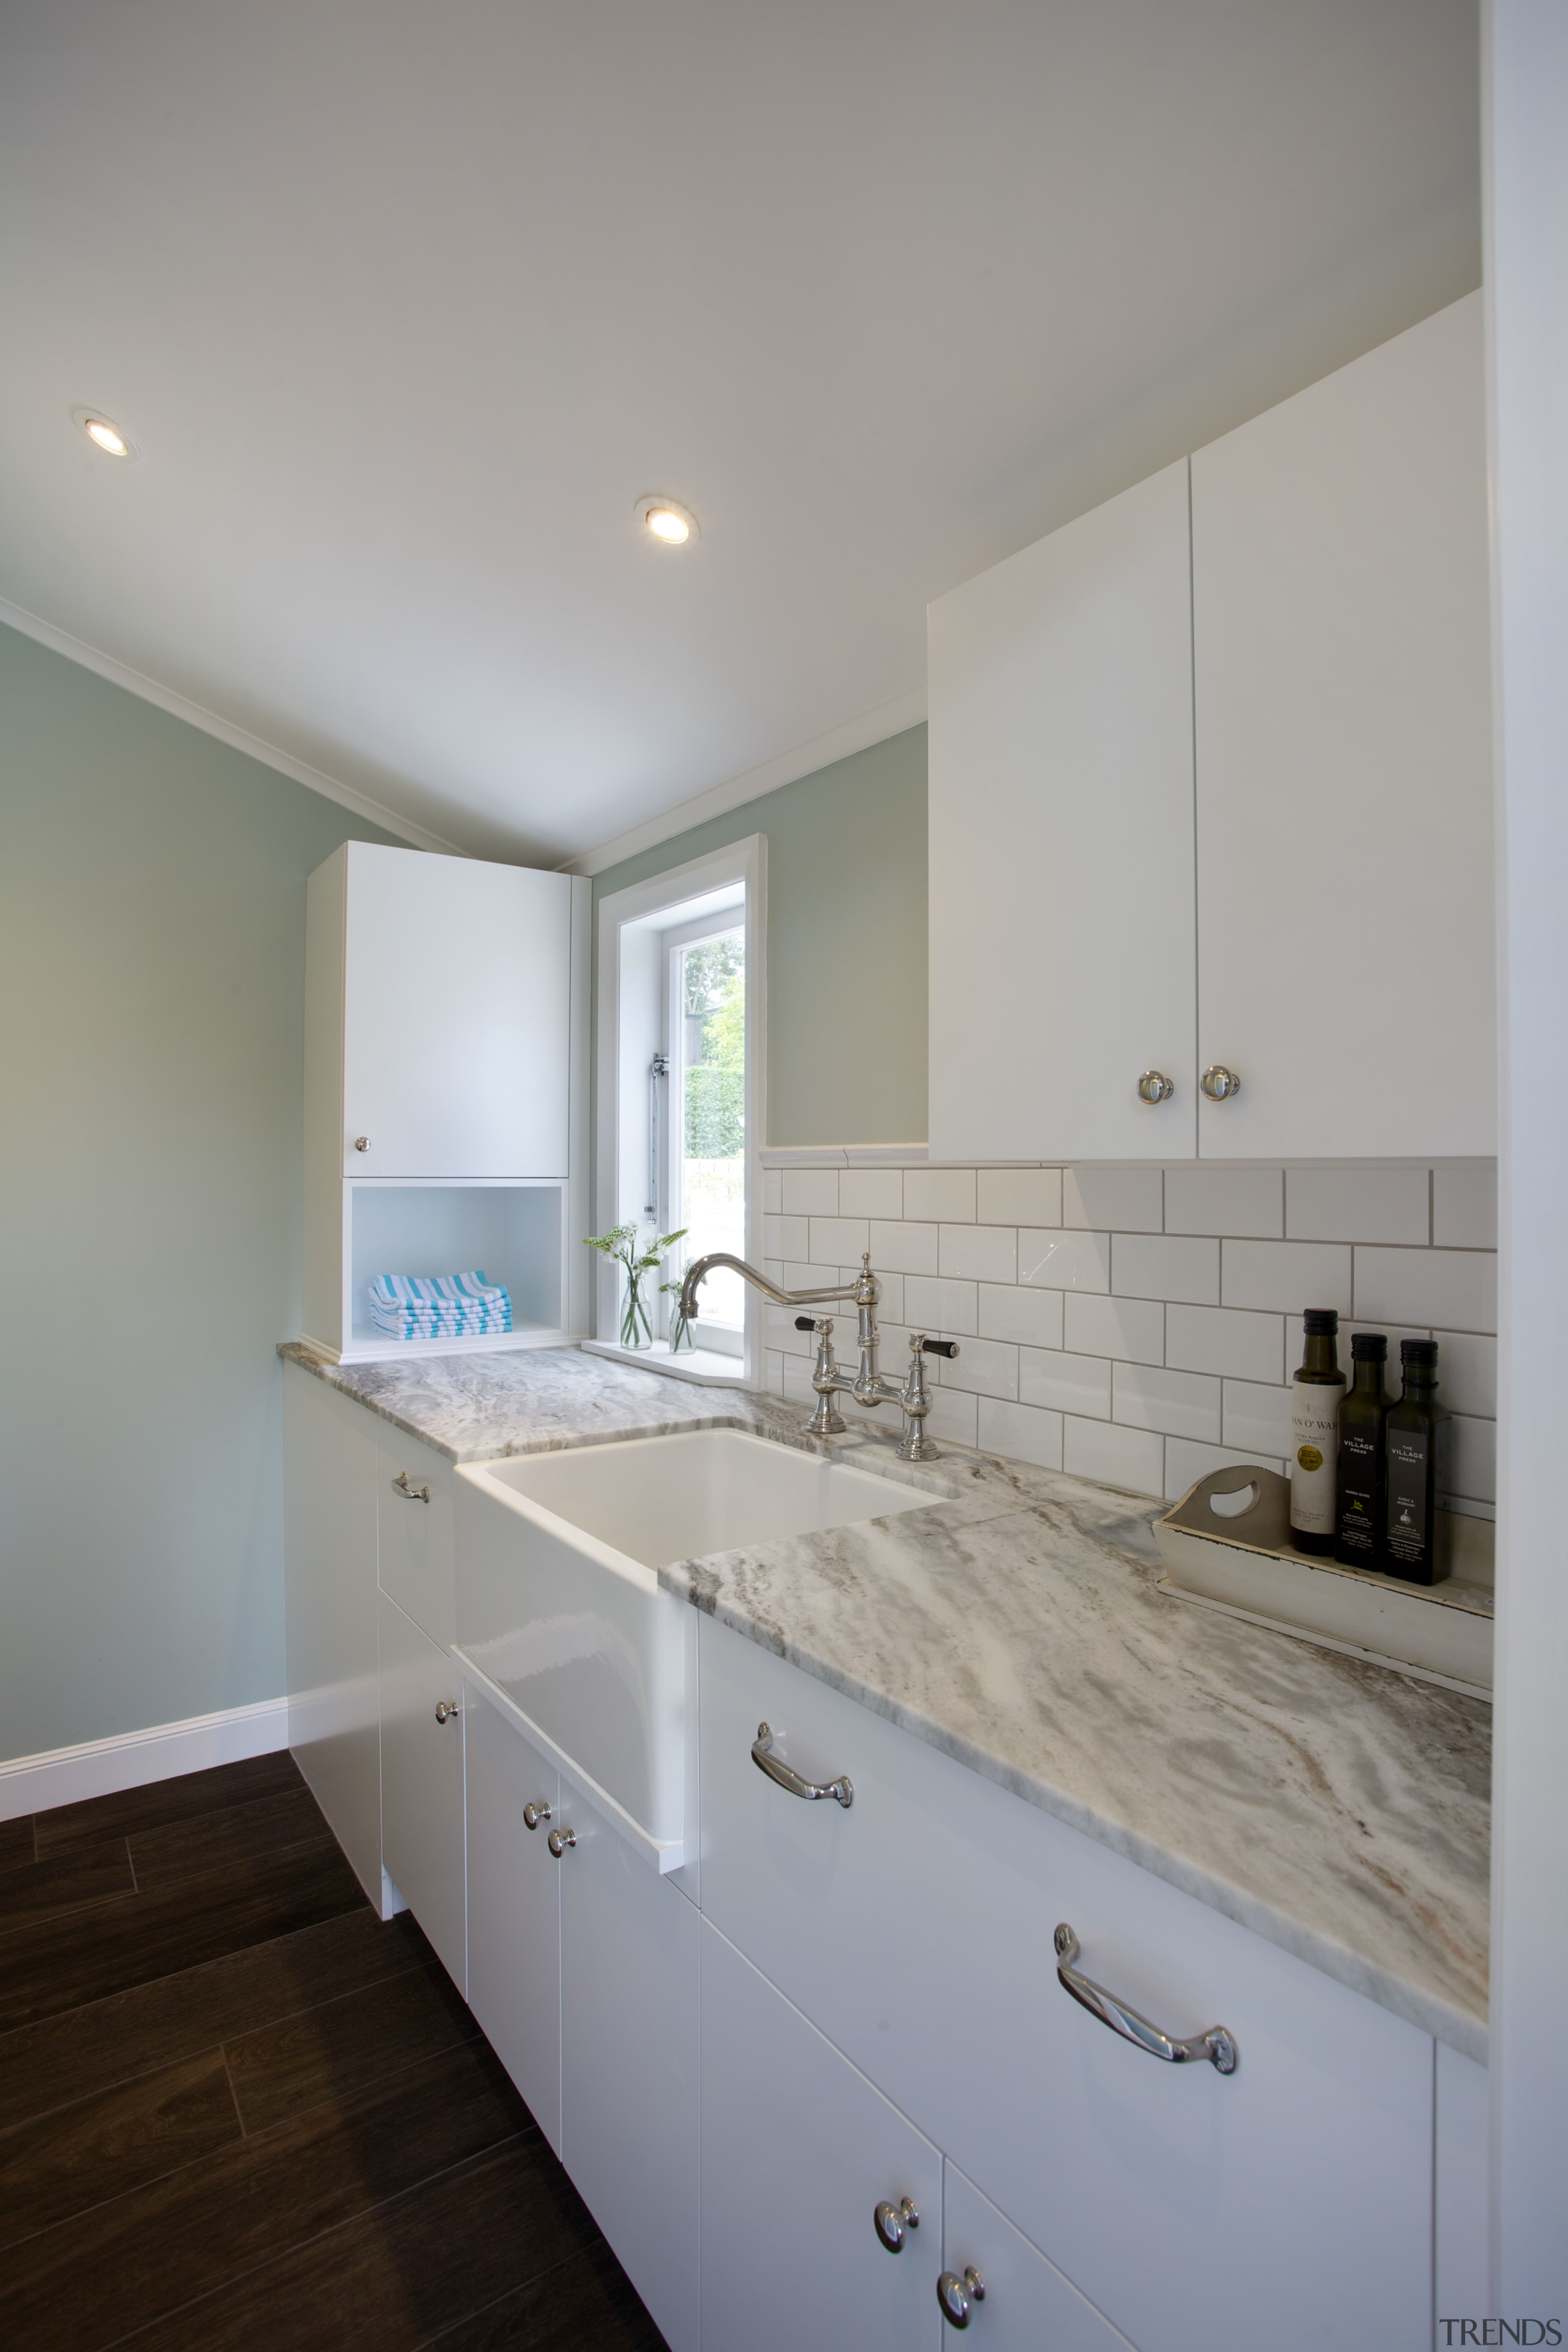 In this design, the butlers sinks are set architecture, bathroom, countertop, daylighting, floor, home, house, interior design, kitchen, real estate, room, sink, gray